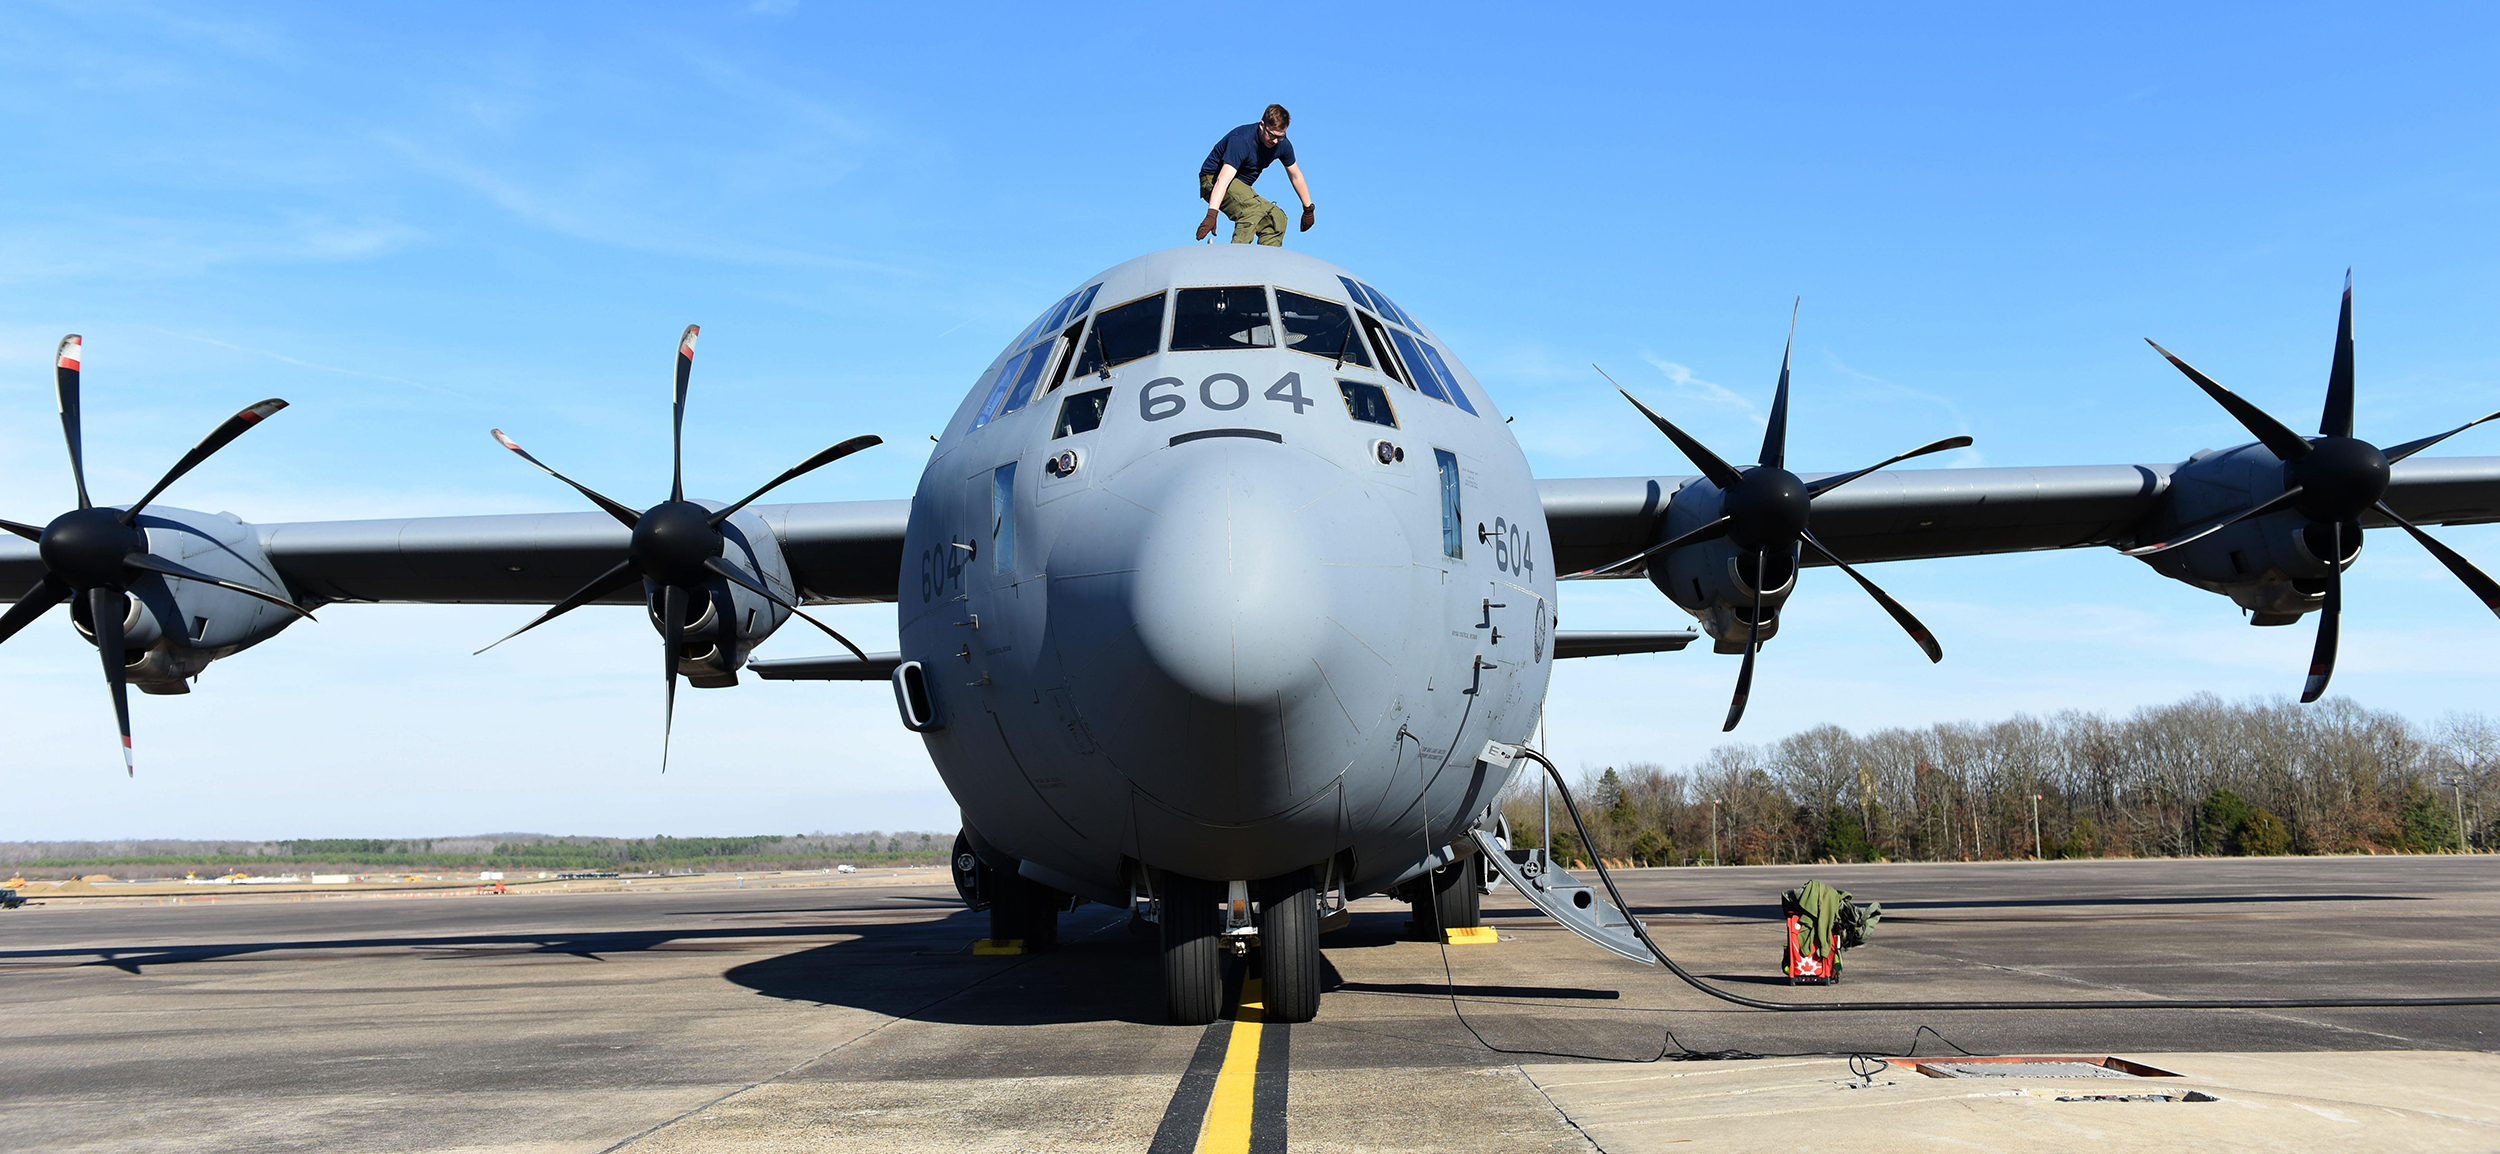 Corporal Julien Simard, a loadmaster from 436 Transport Squadron, performs his pre-flight checks on a CC-130J Hercules on February 10, 2017, at Little Rock Air Force Base, Arkansas, during Exercise Green Flag Little Rock. PHOTO:  Senior Airman Mercedes Taylor, USAF